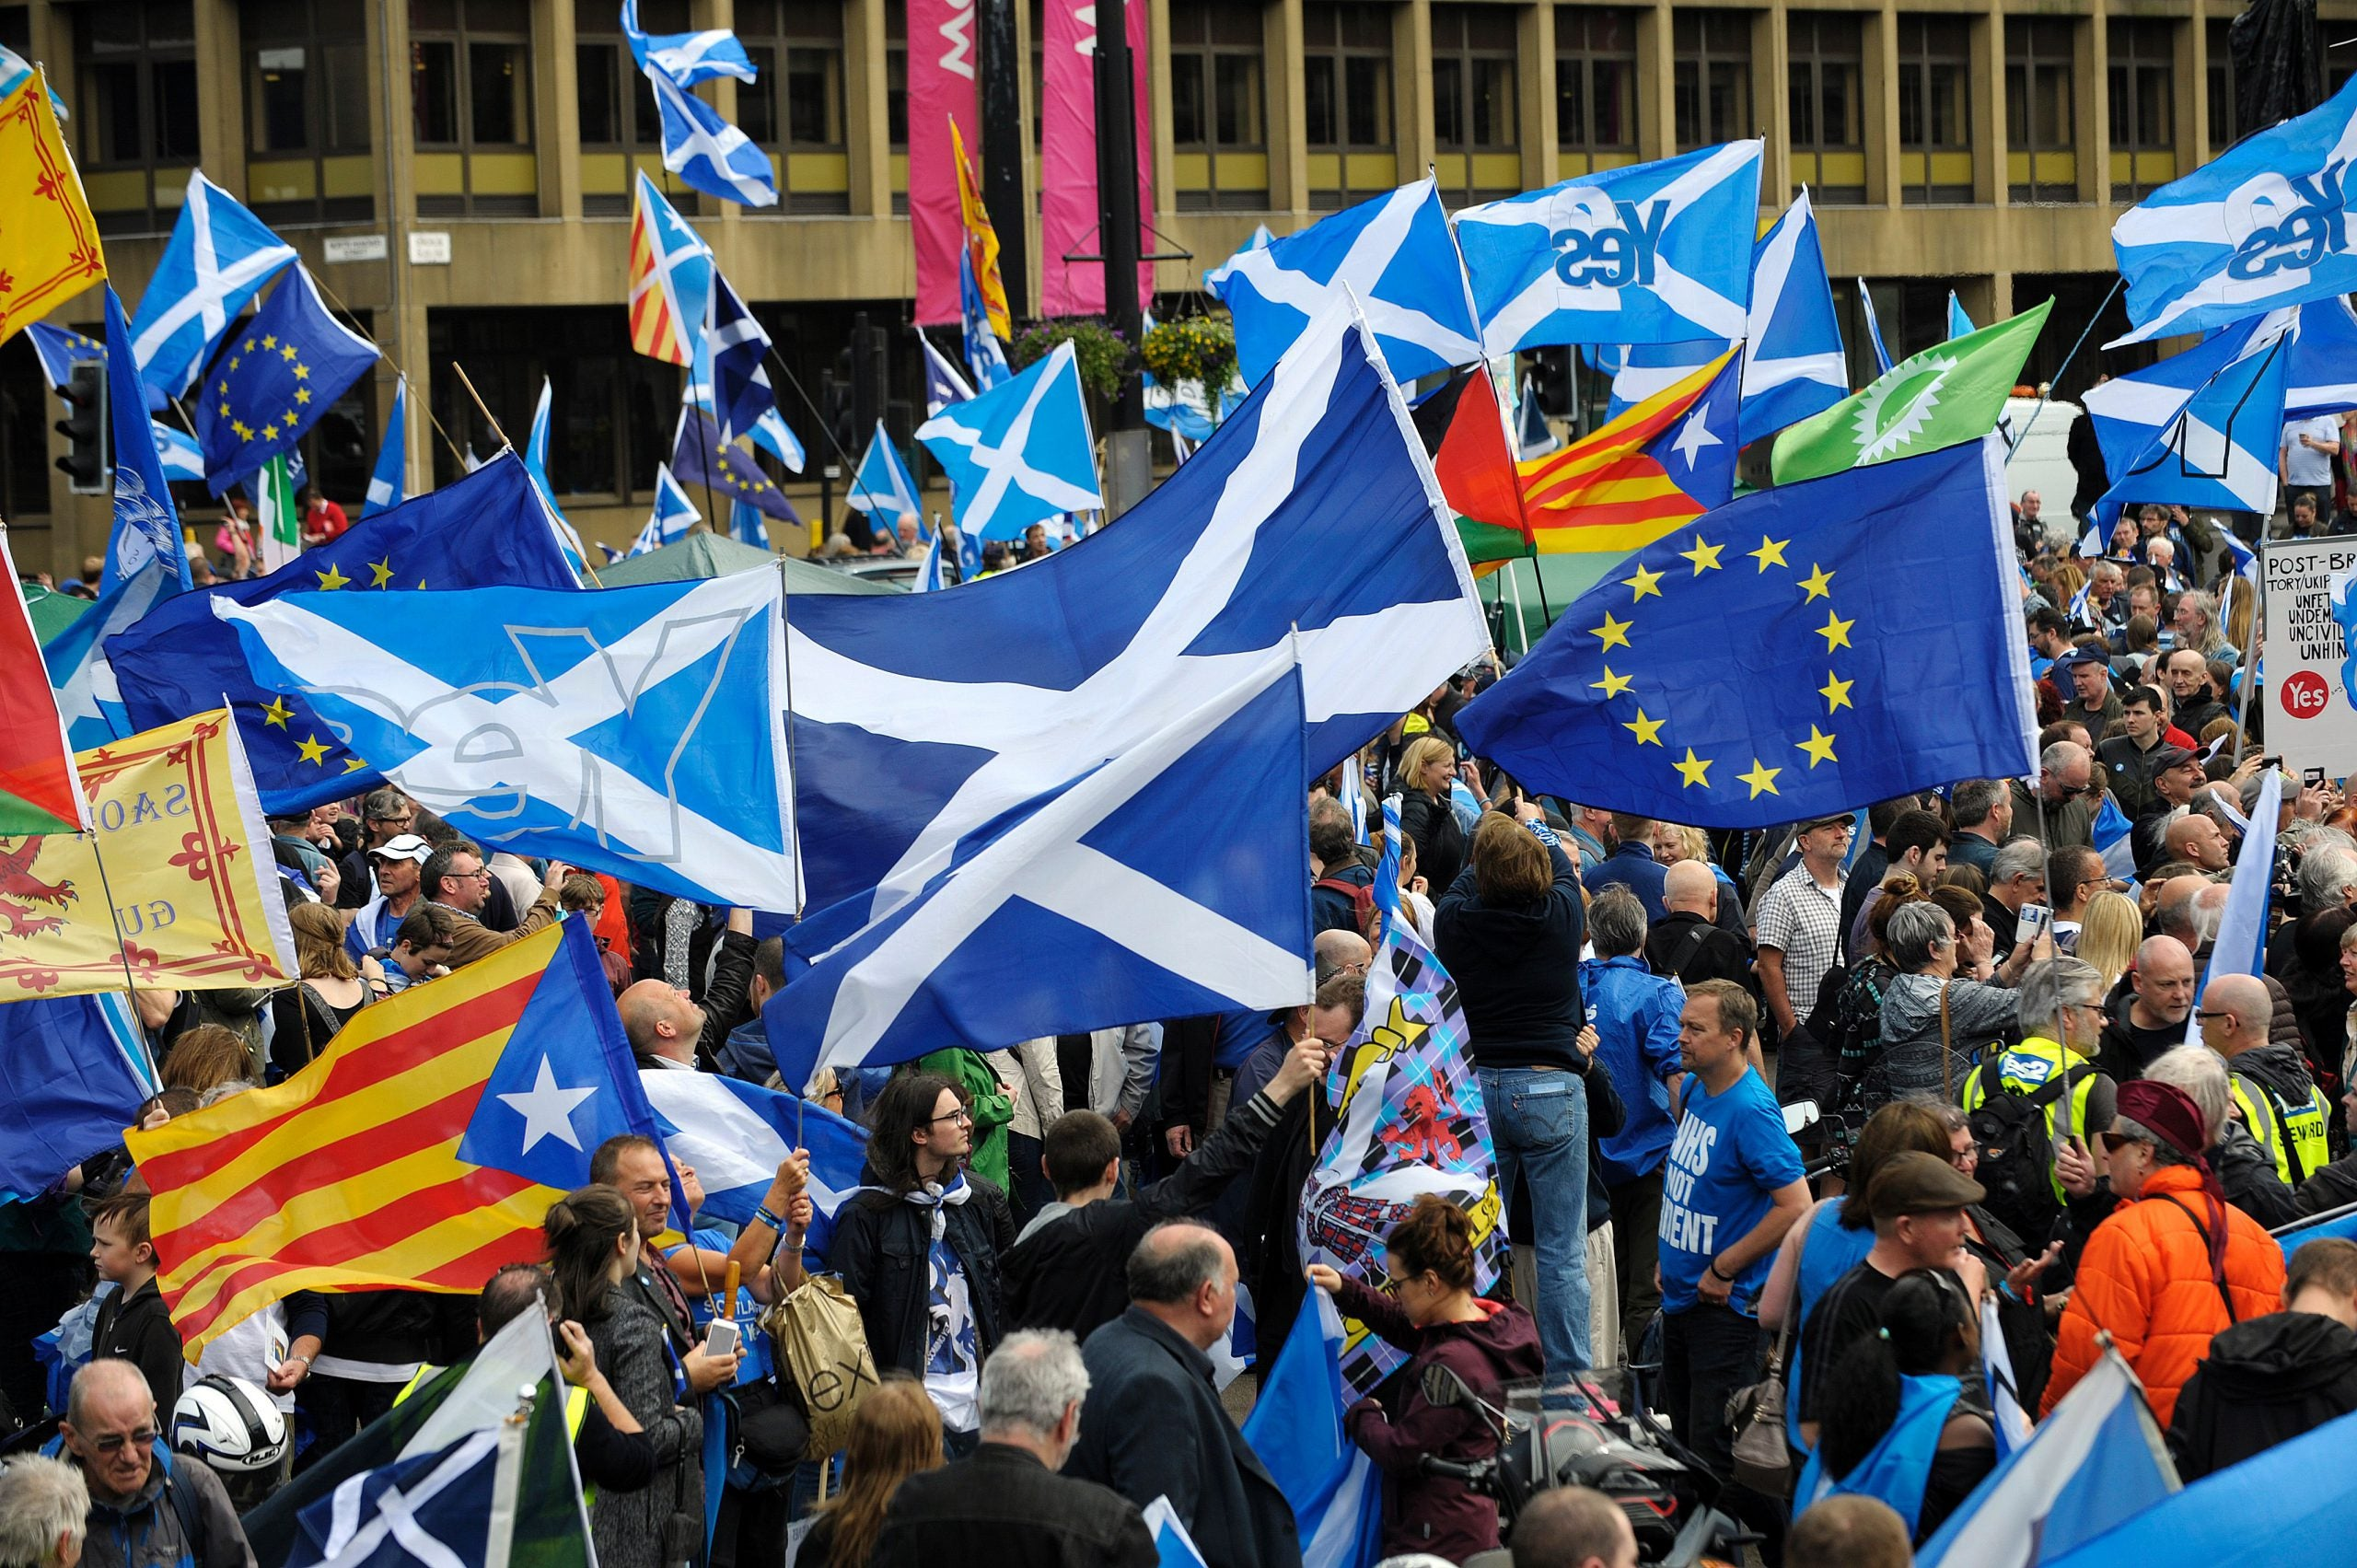 Spain's intervention is a reminder Scottish independence could work nicely for the EU